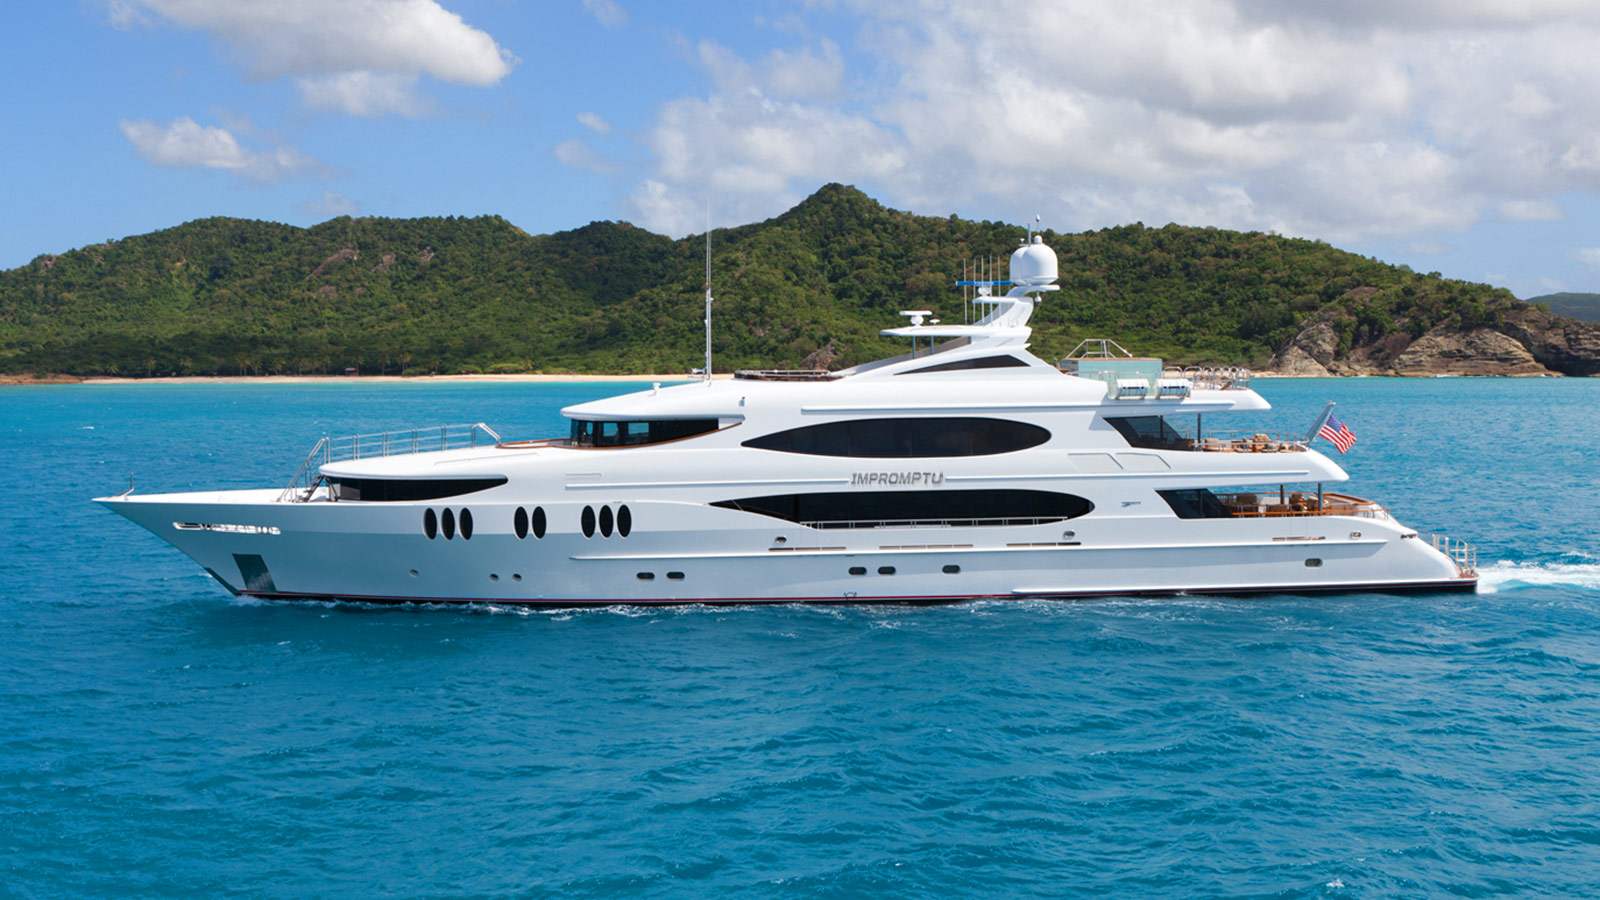 Experience unforgettable Mexico with a charter on 164'/50m M/Y Impromptu